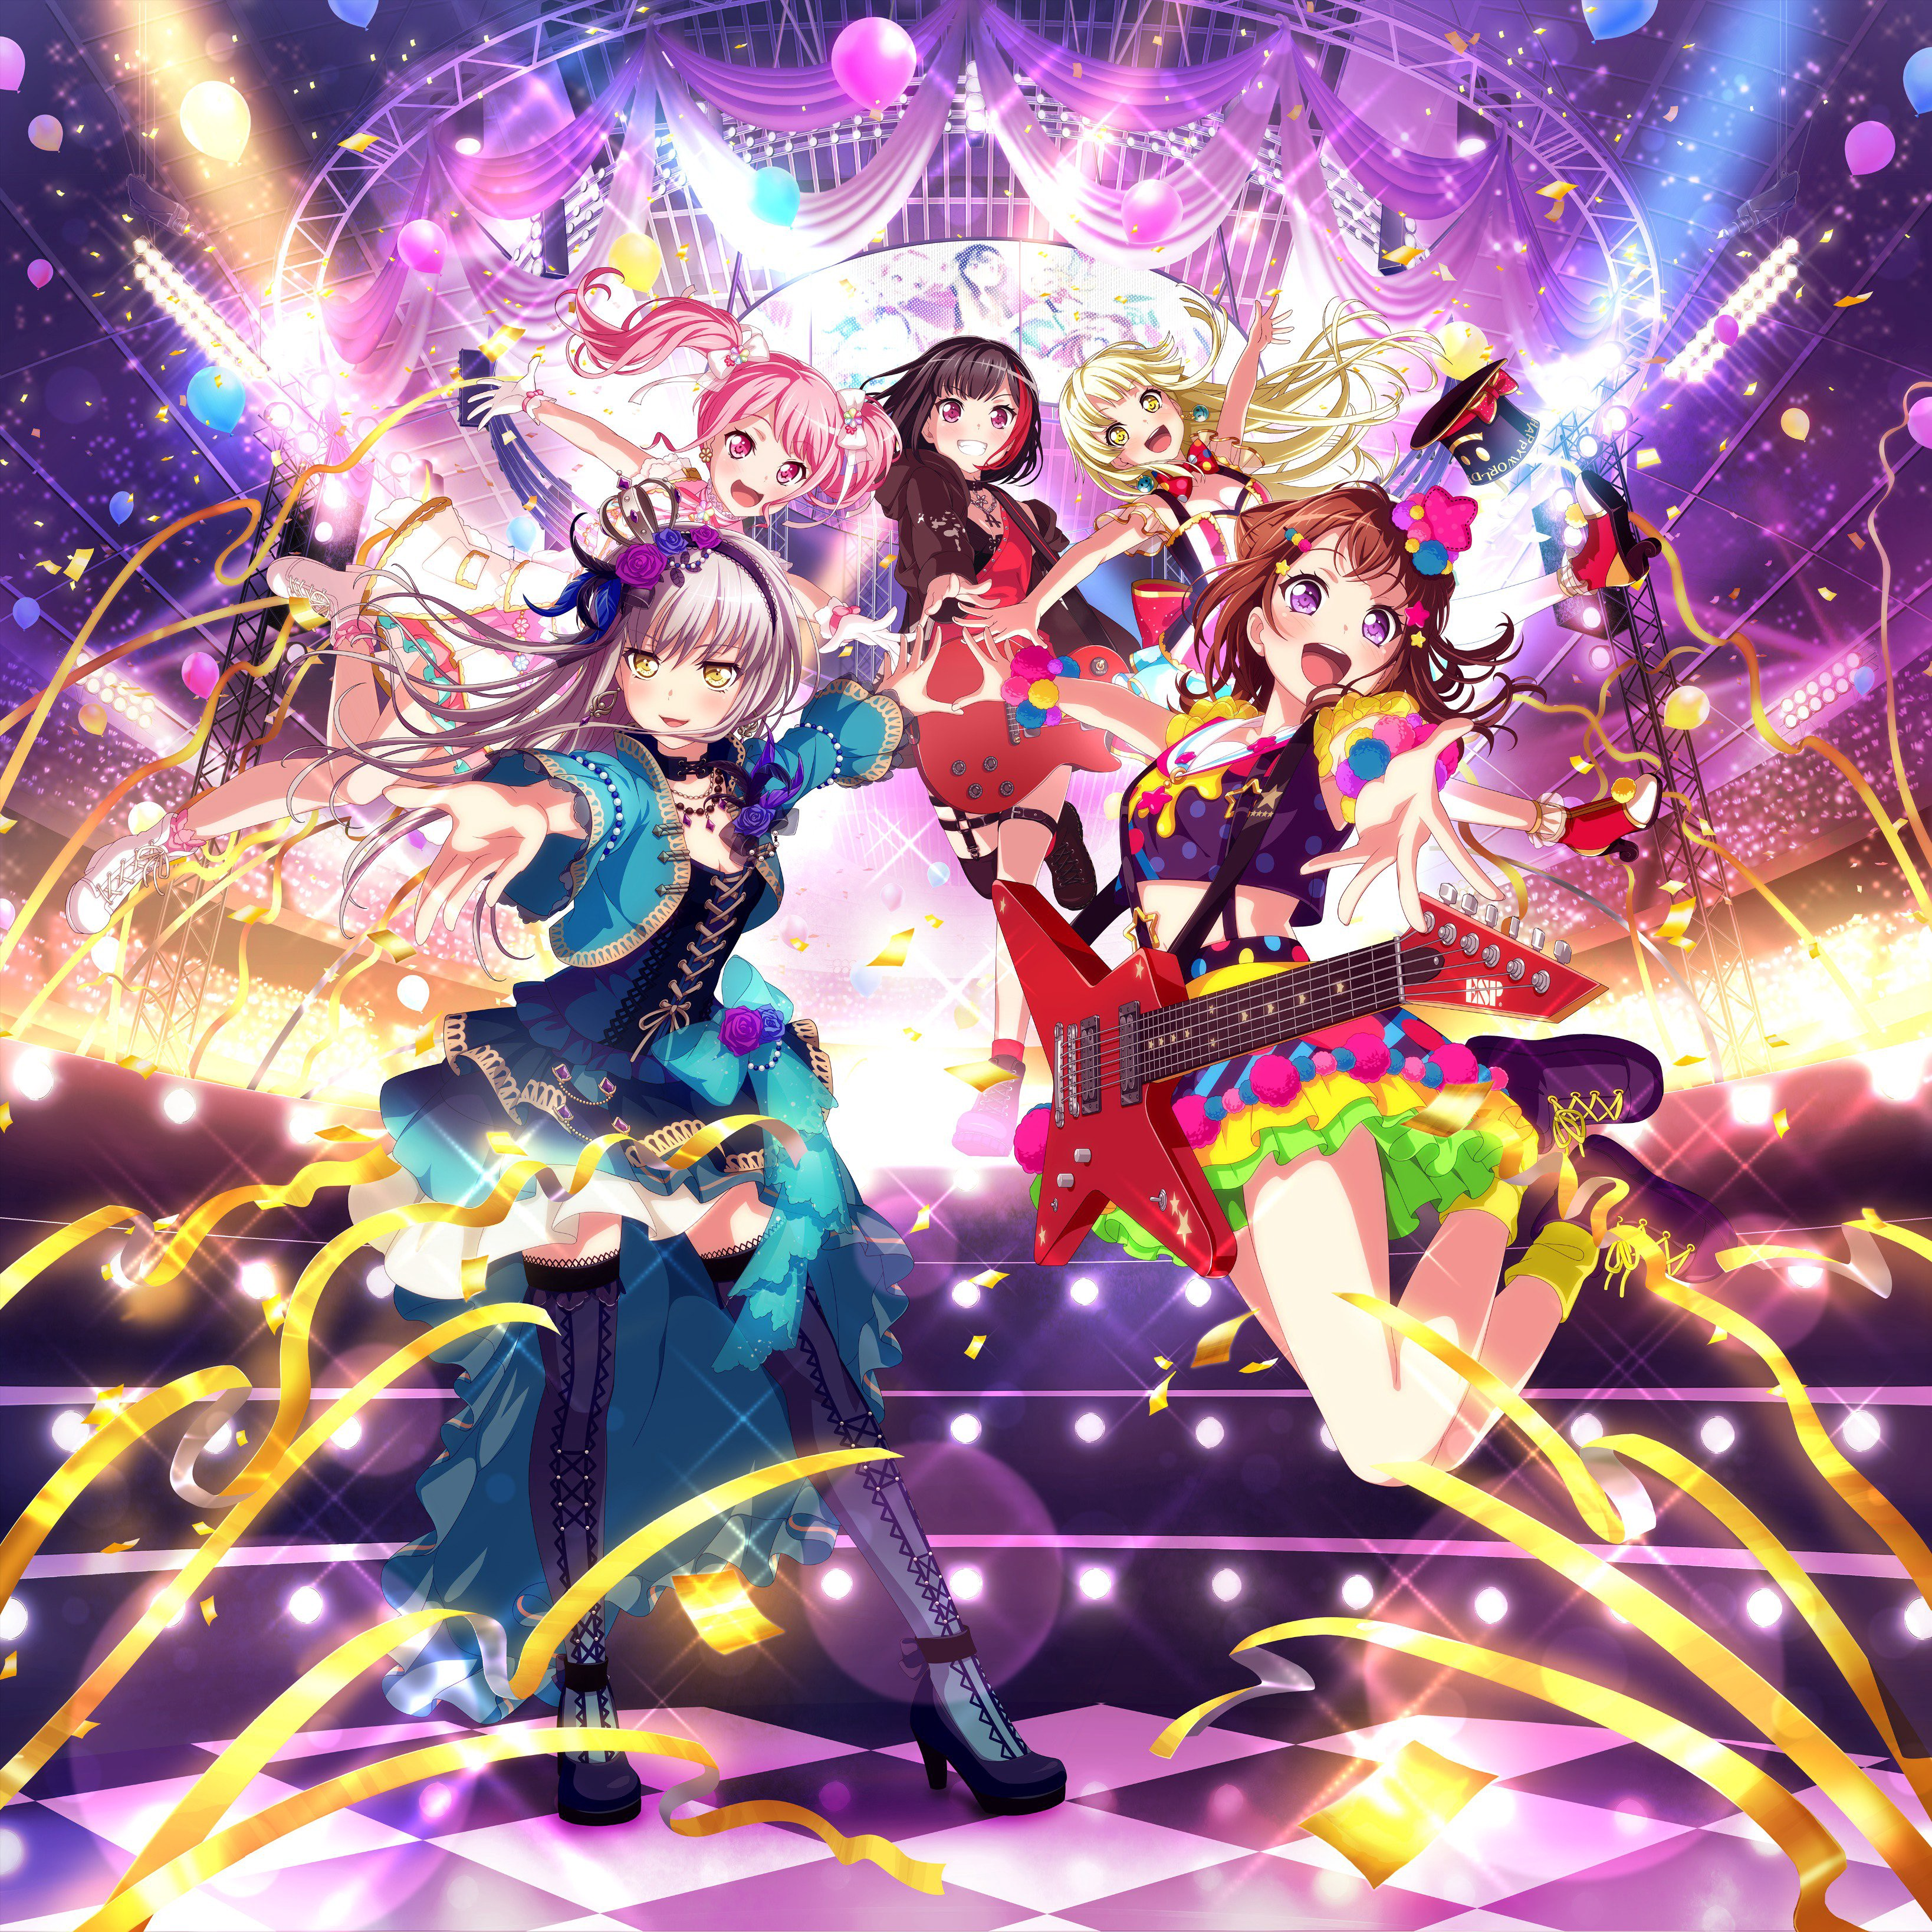 Check Out BanG Dream: Shows, Music, Games, and More